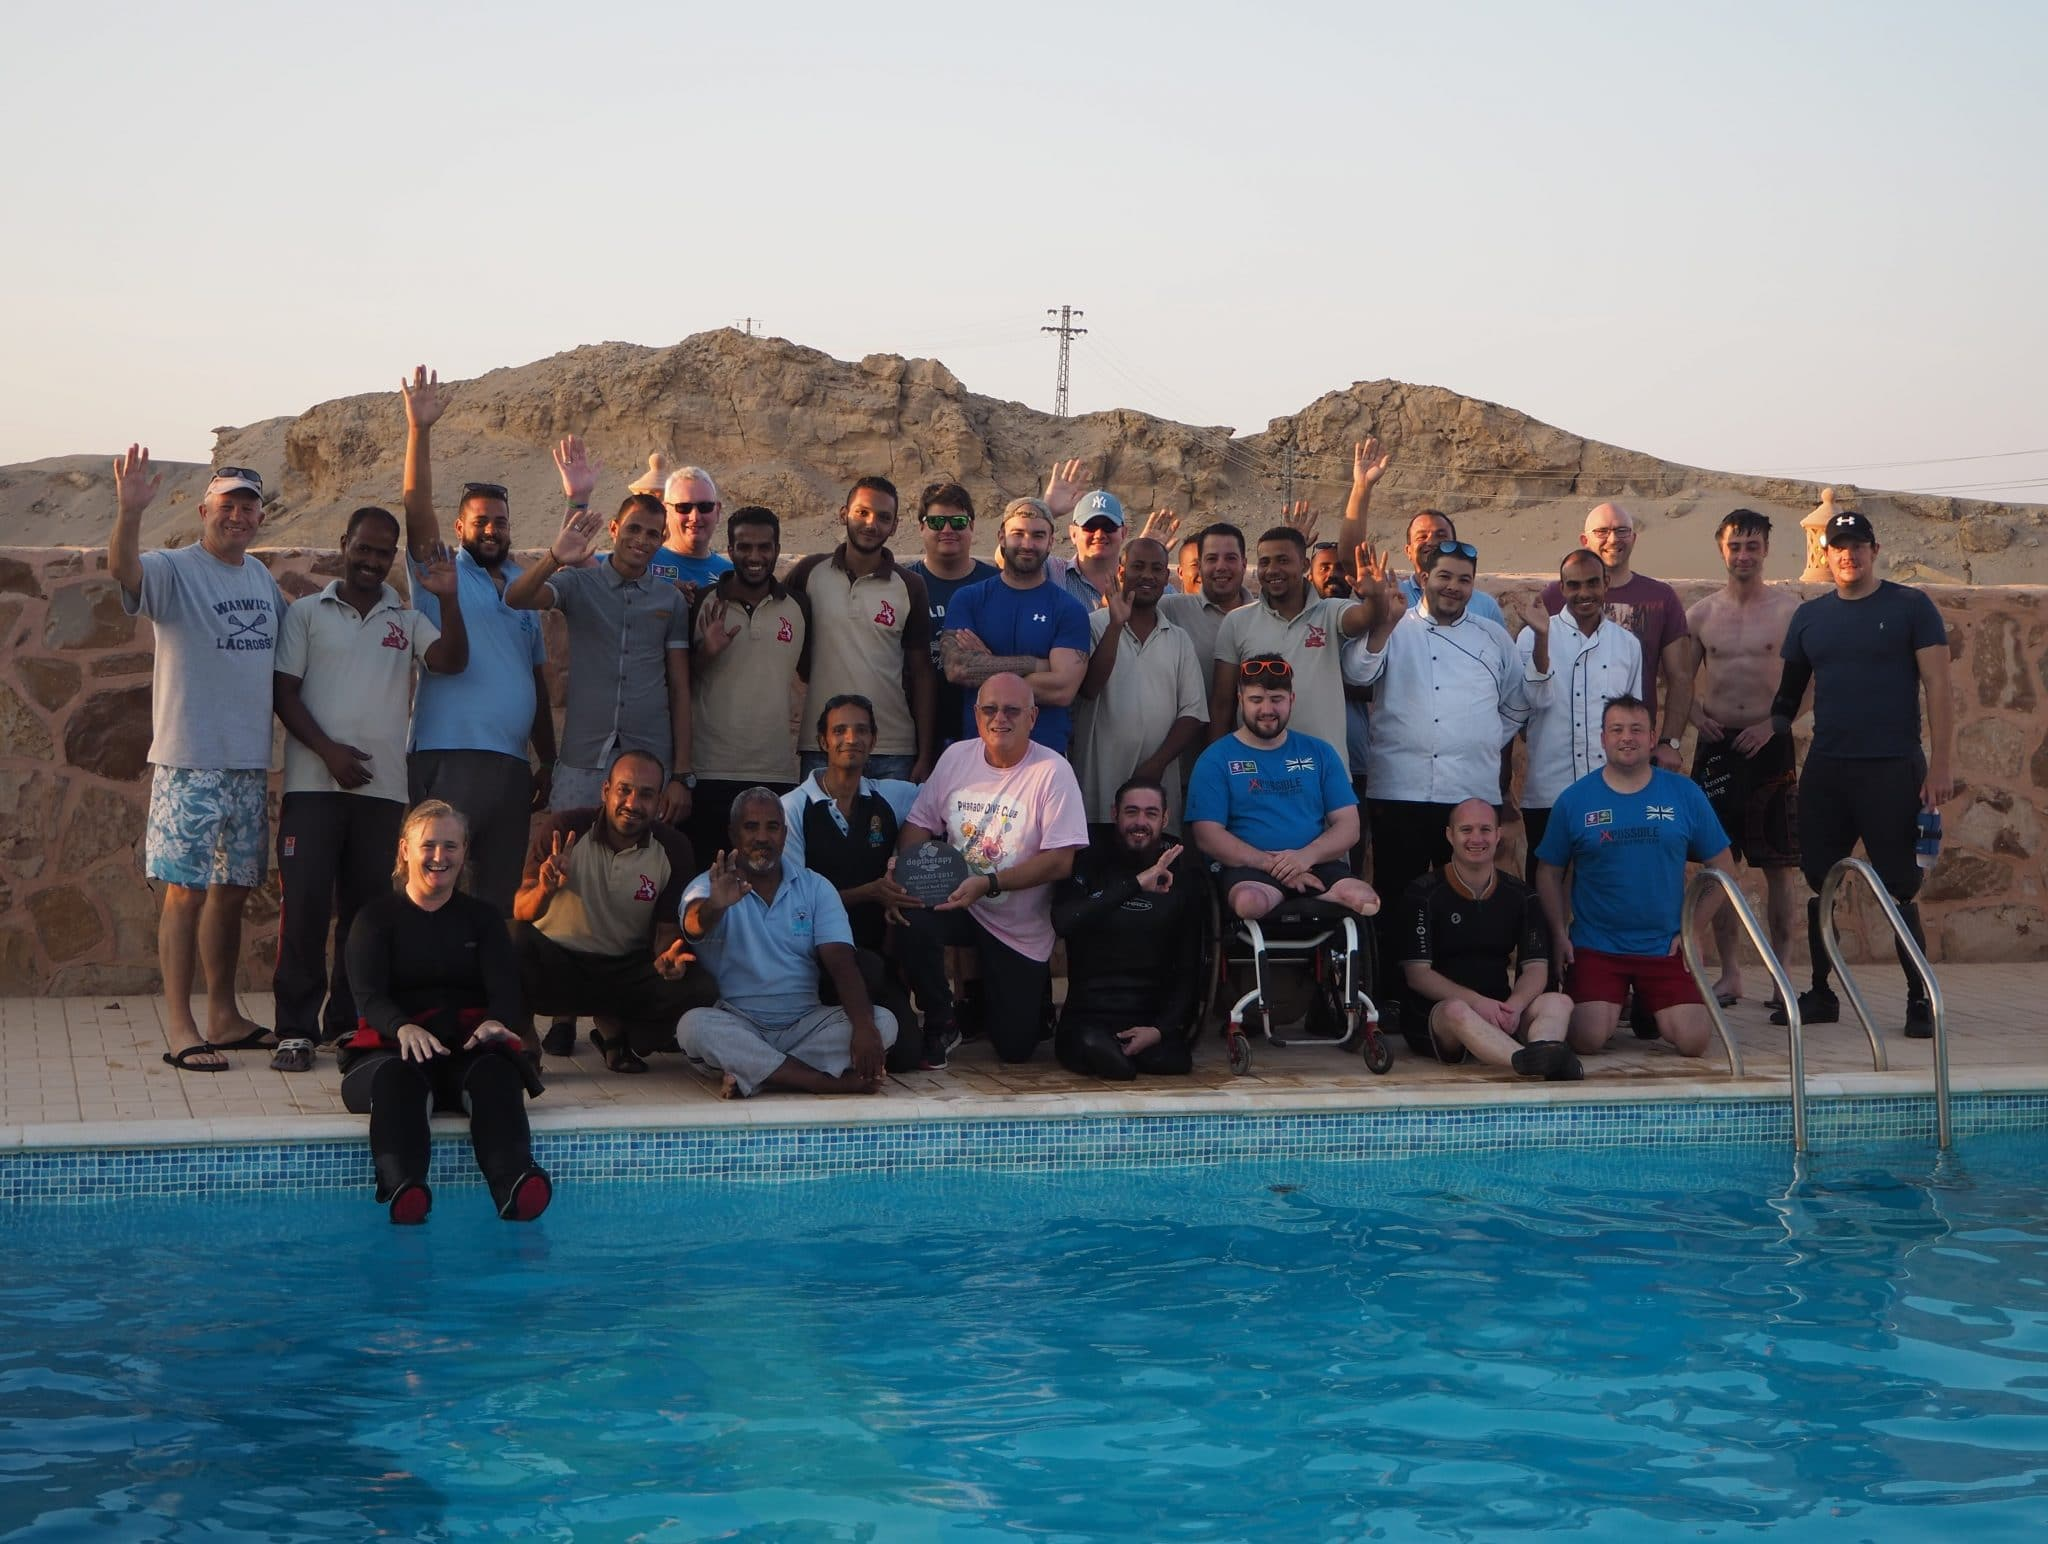 Team Deptherapy at Roots Red Sea, Egypt 1 Credit Deptherapy and Roots Red Sea